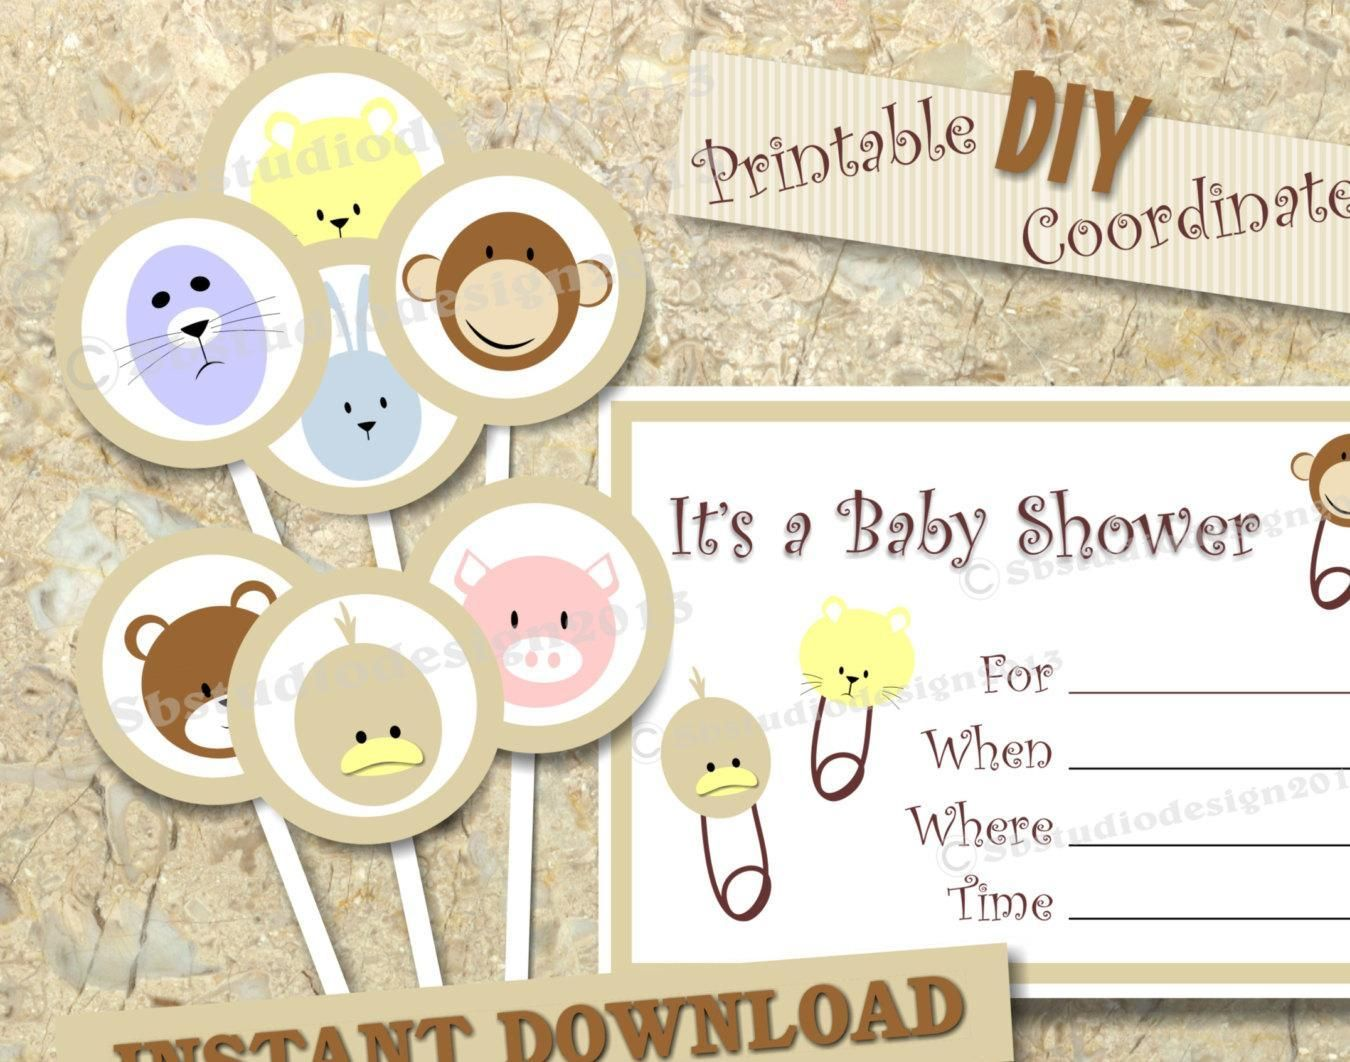 Baby Shower cupcake topper and invitation set DIY printable - http://babyshowercupcake-toppers.com/baby-shower-cupcake-topper-and-invitation-set-diy-printable/